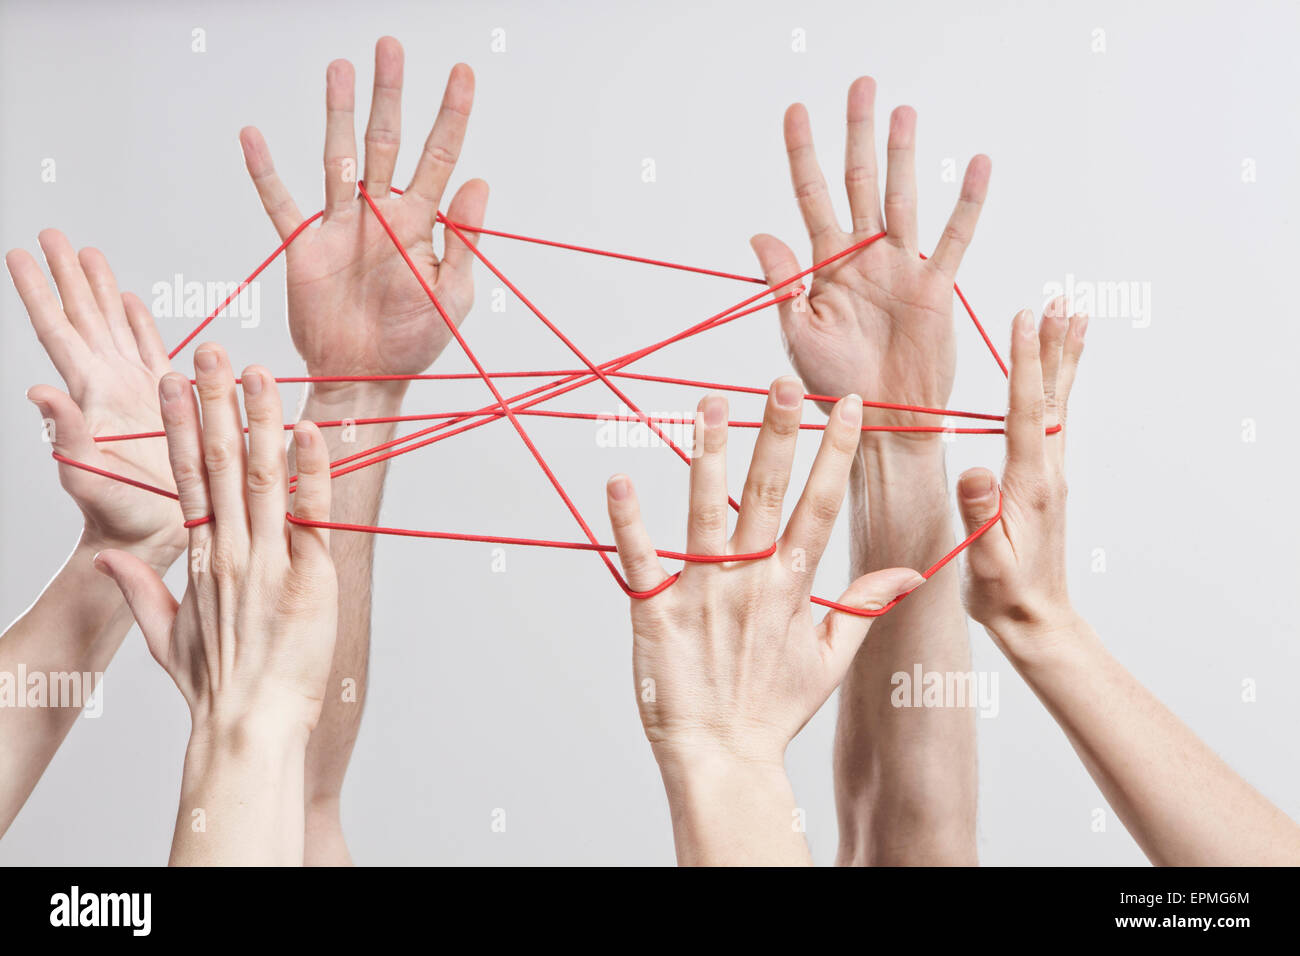 Connection, Team, Teamwork, Relationship, Hands, Cat's Cradle - Stock Image